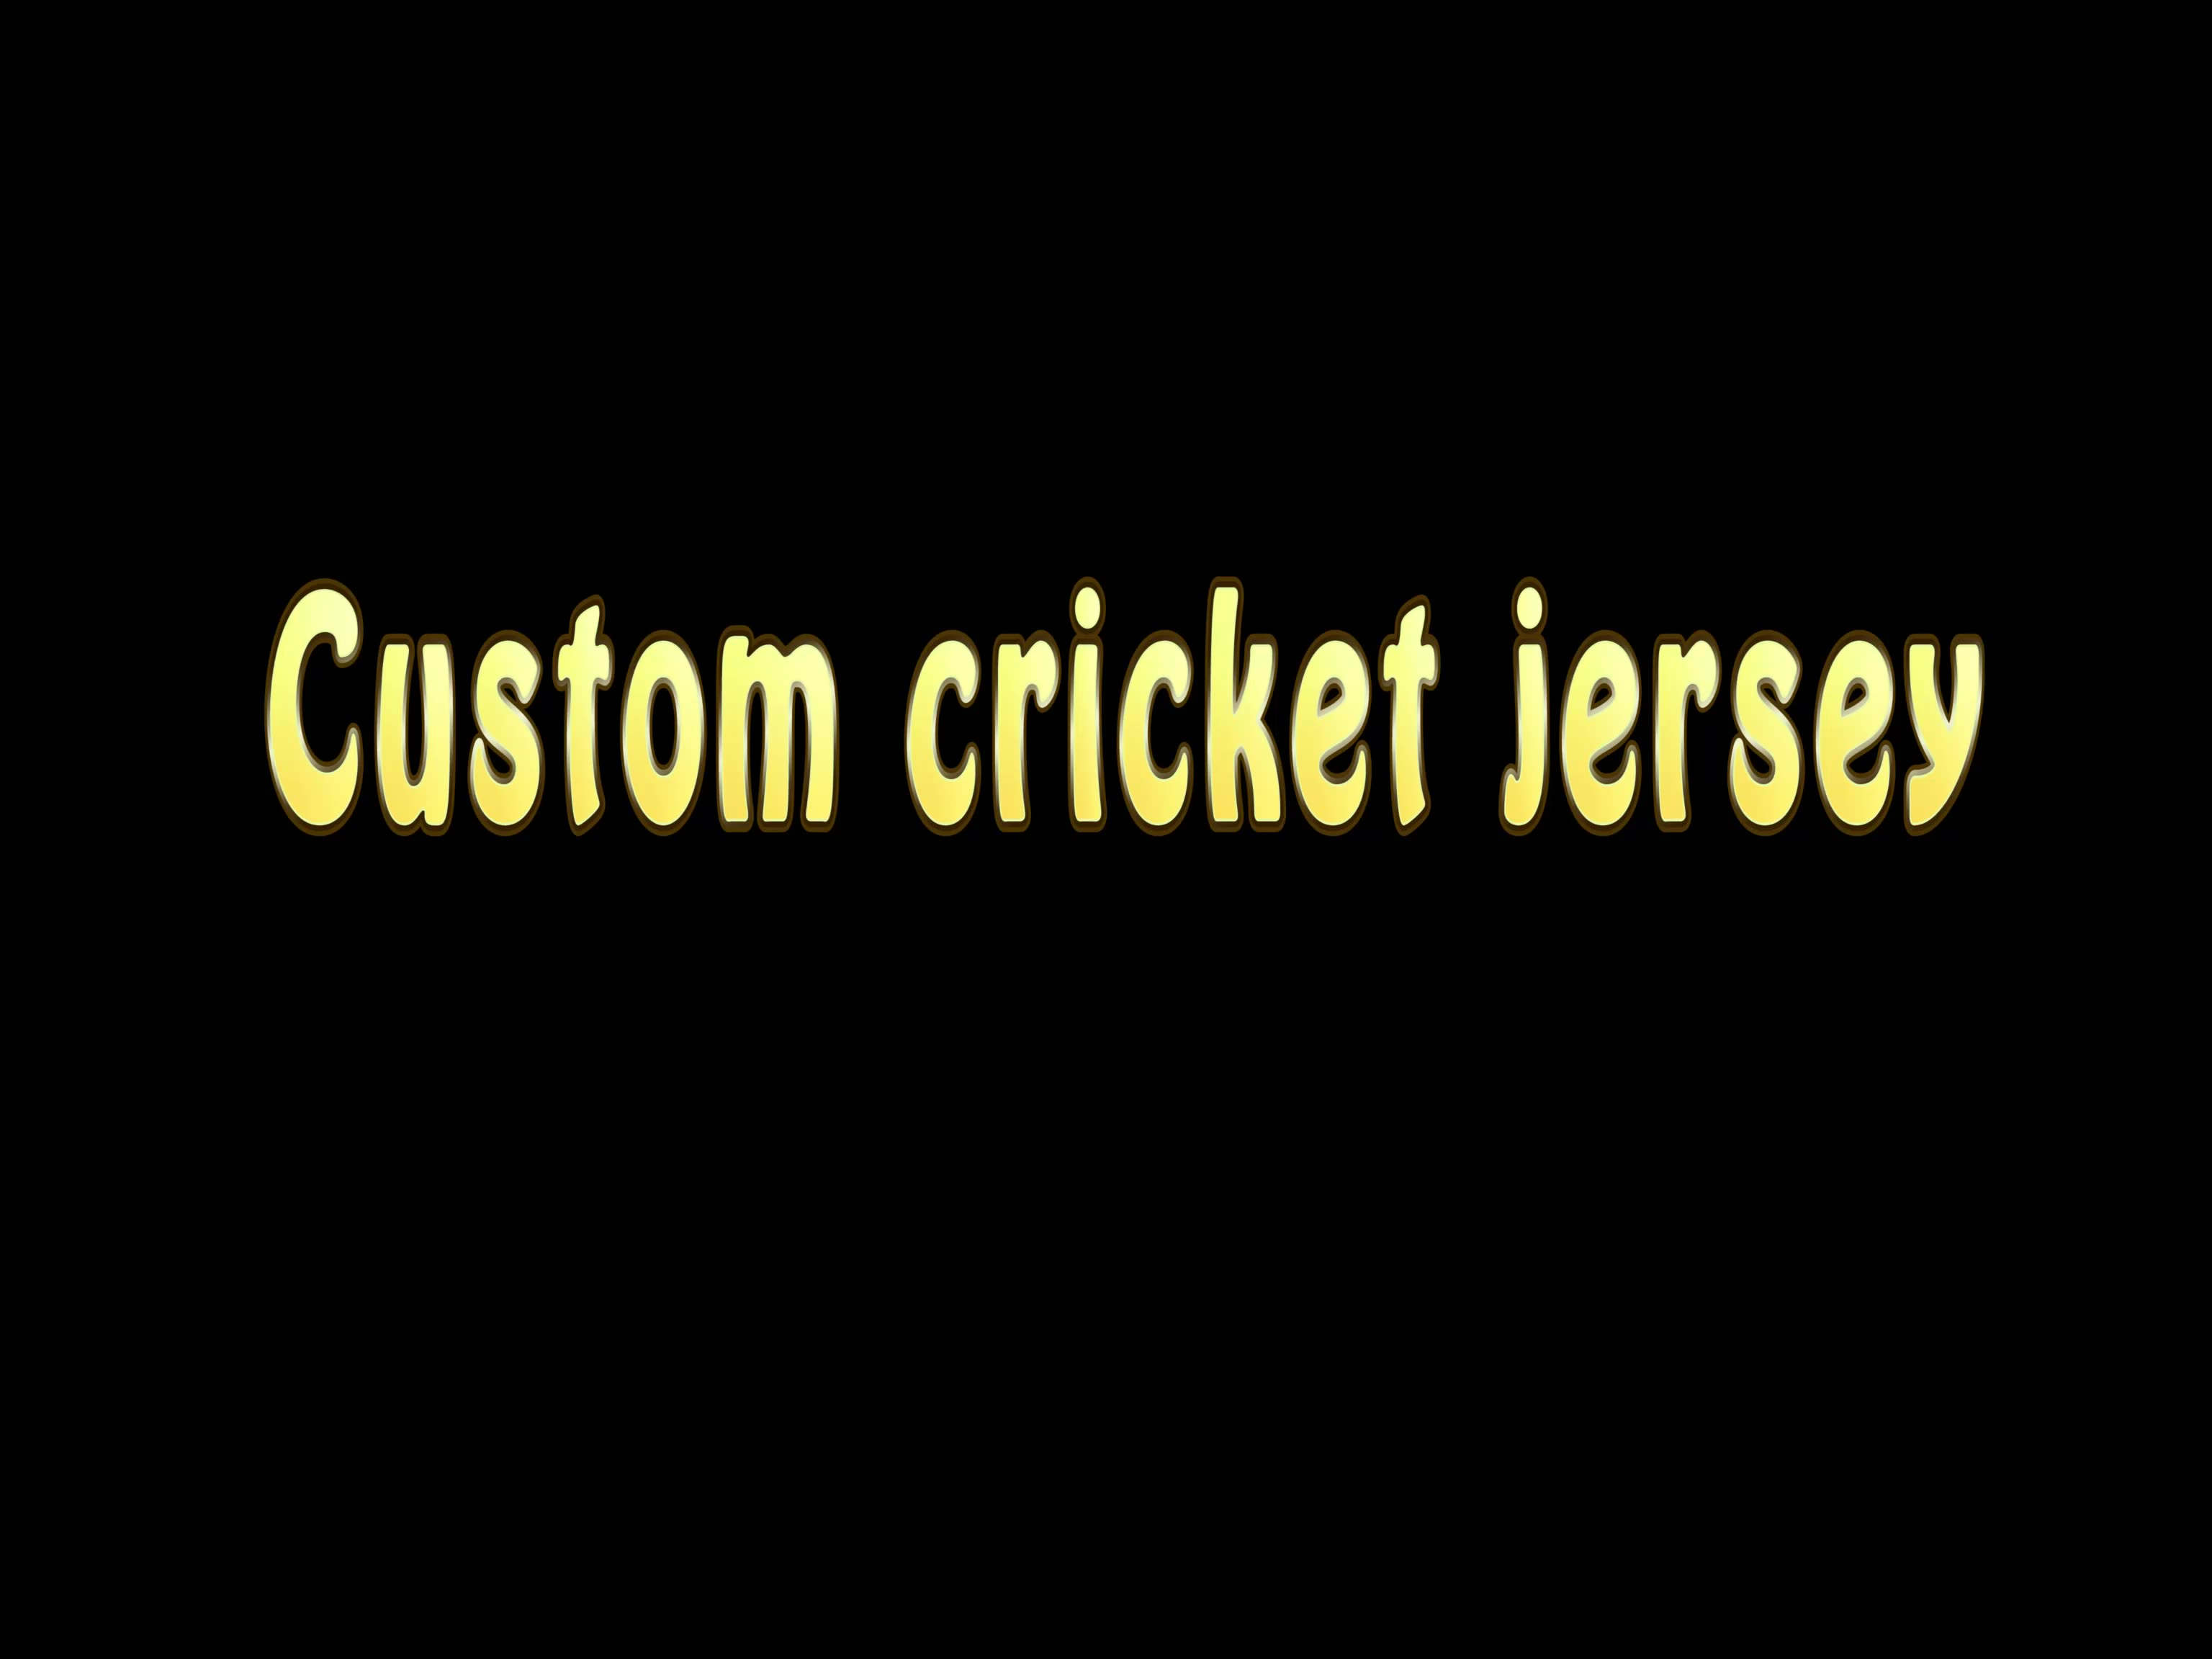 New Zealand Sports jersey new model sublimation best yellow cricket jersey